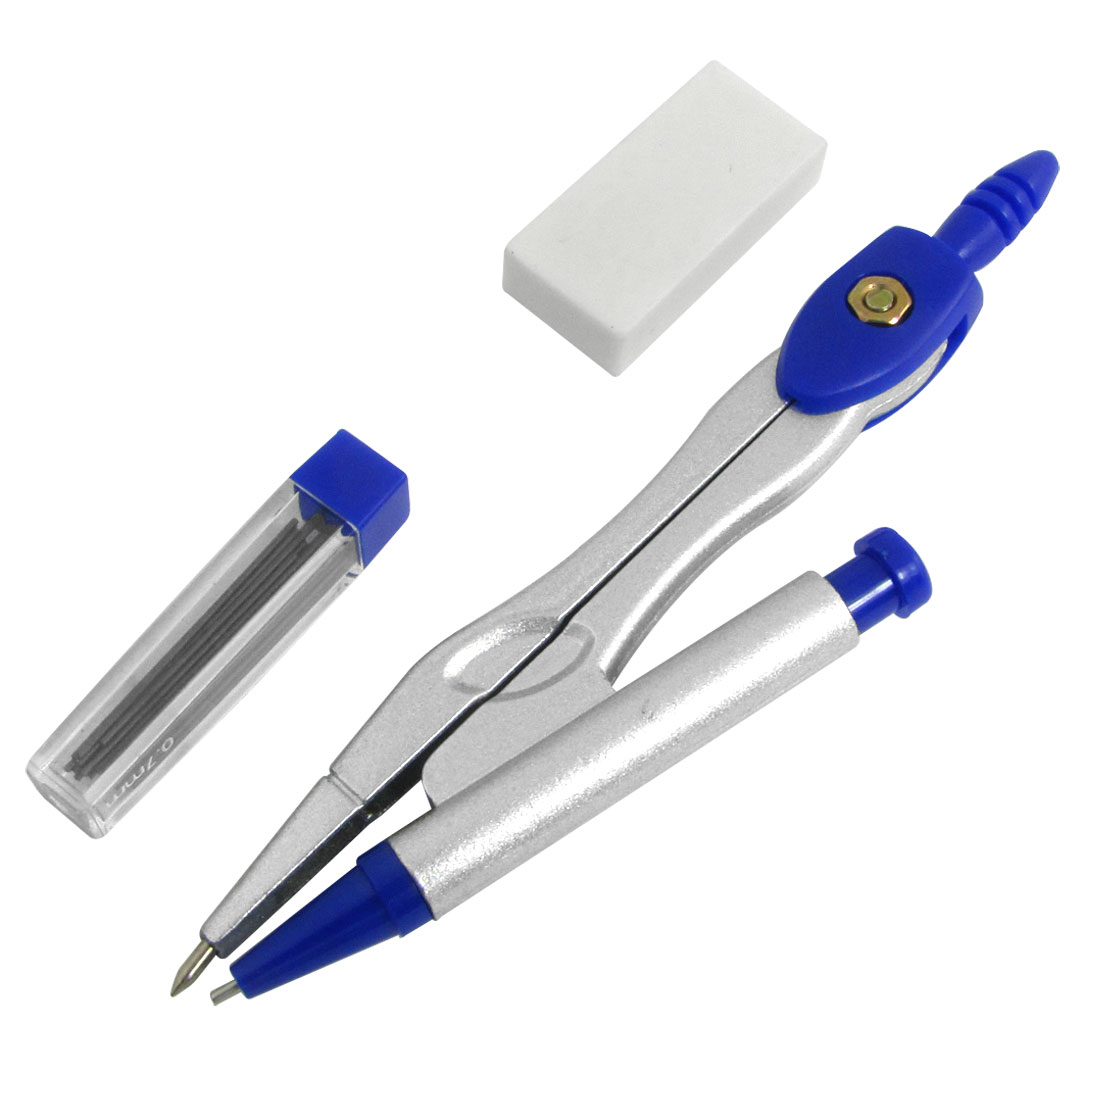 Blue Grey Metal Propelling Pencil Compasses Geometry Tools Set w Case